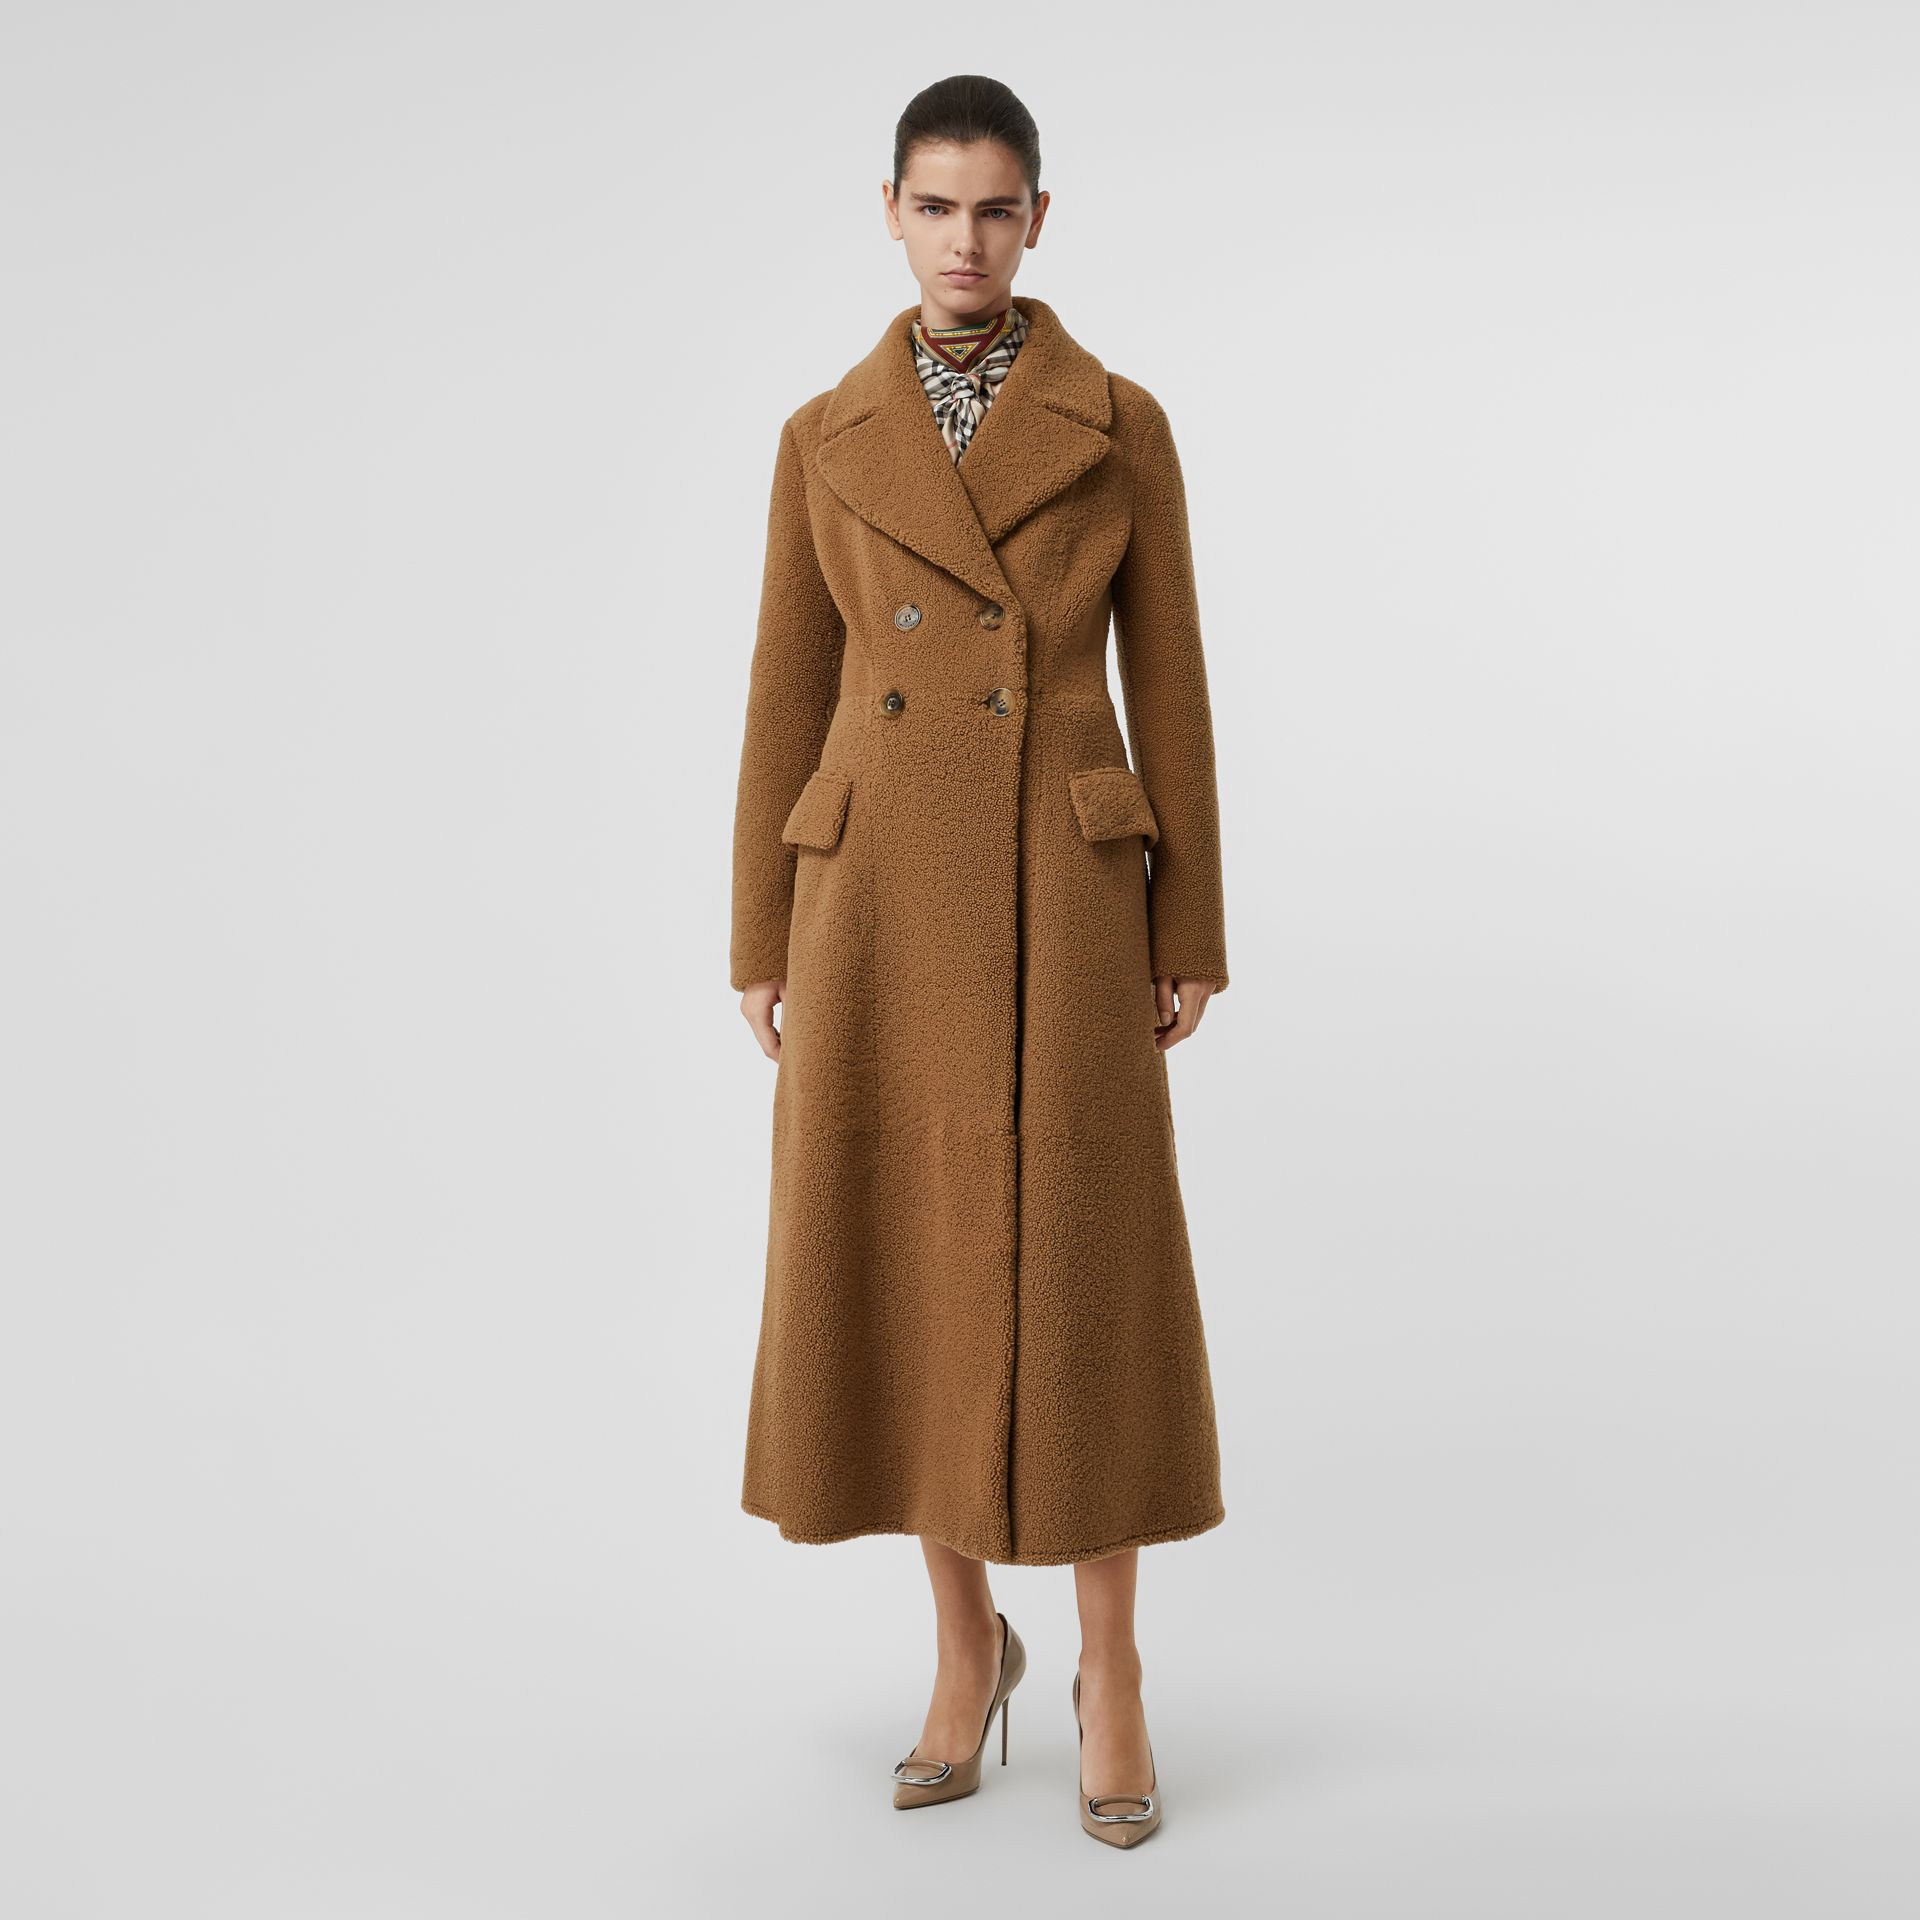 Shearling Tailored Coat in Caramel - Women | Burberry United Kingdom - gallery image 5